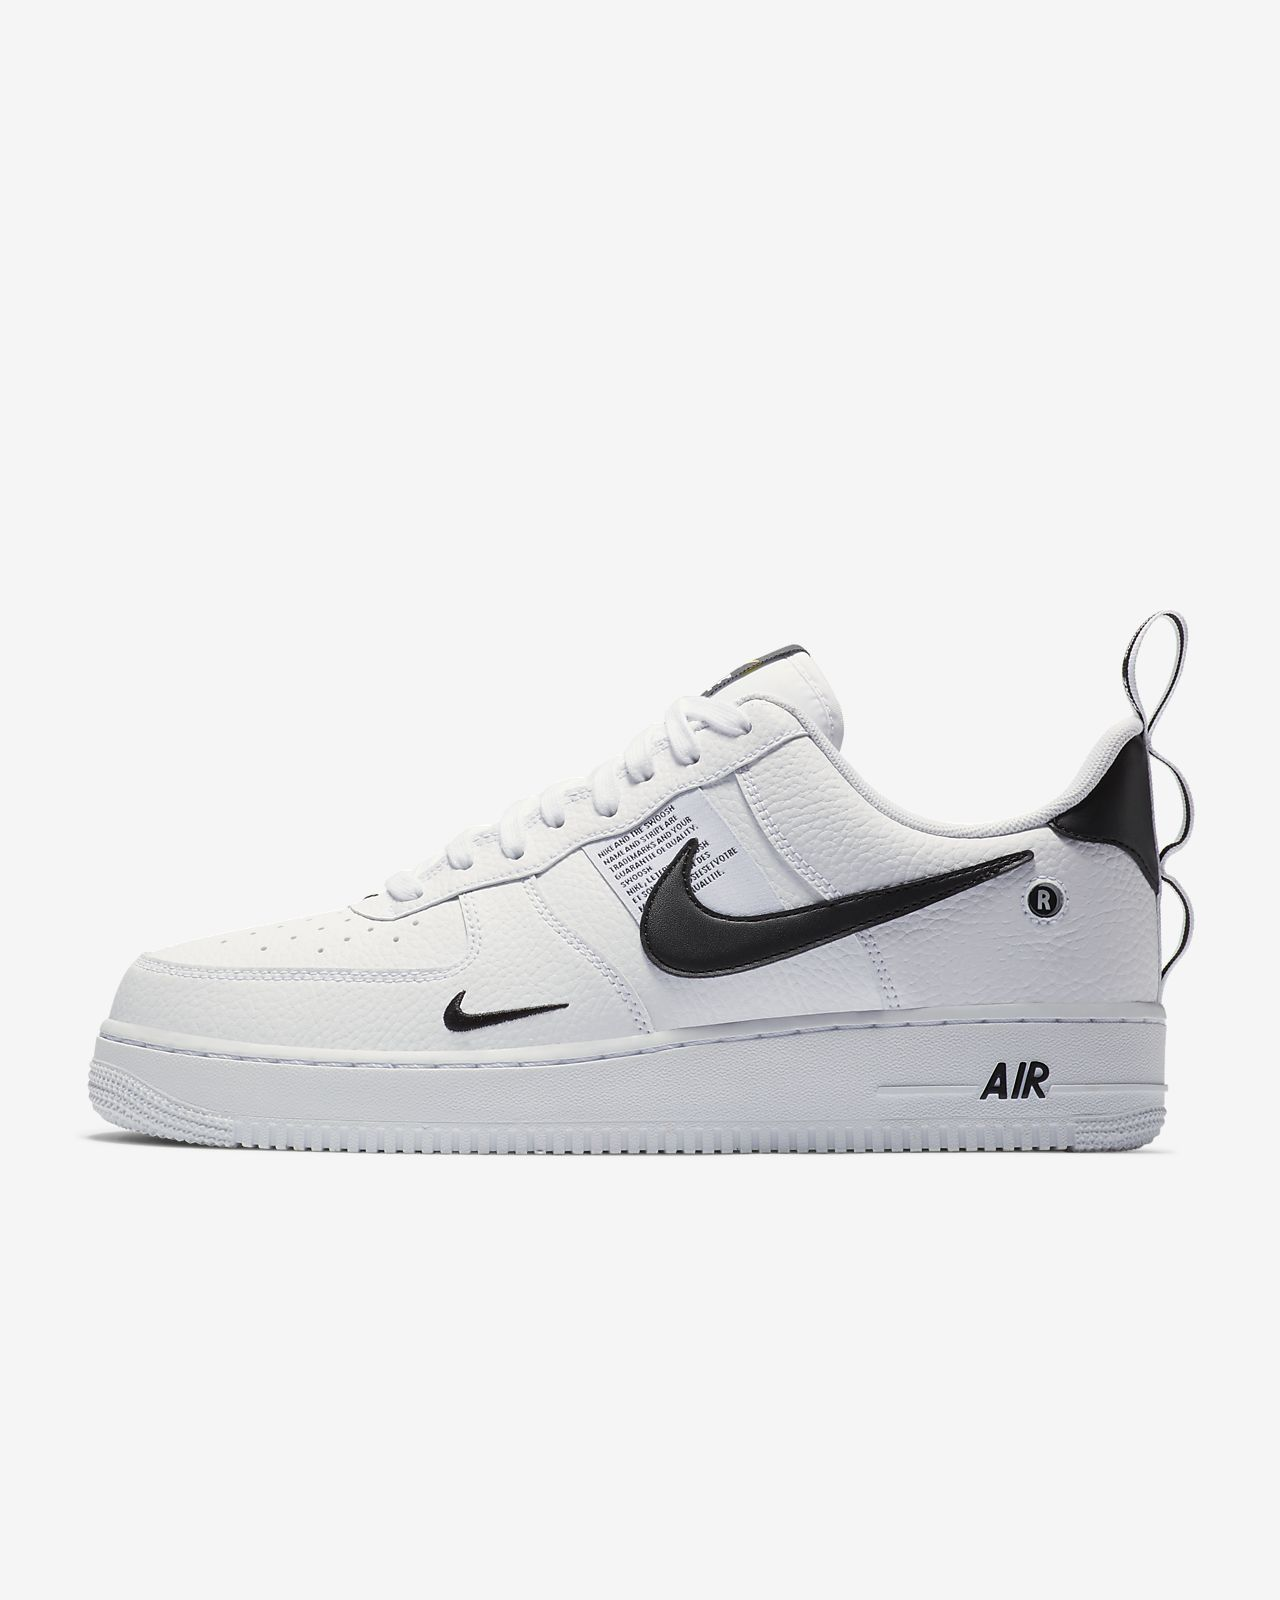 892e81c319a3 Nike Air Force 1  07 LV8 Utility Men s Shoe. Nike.com NL